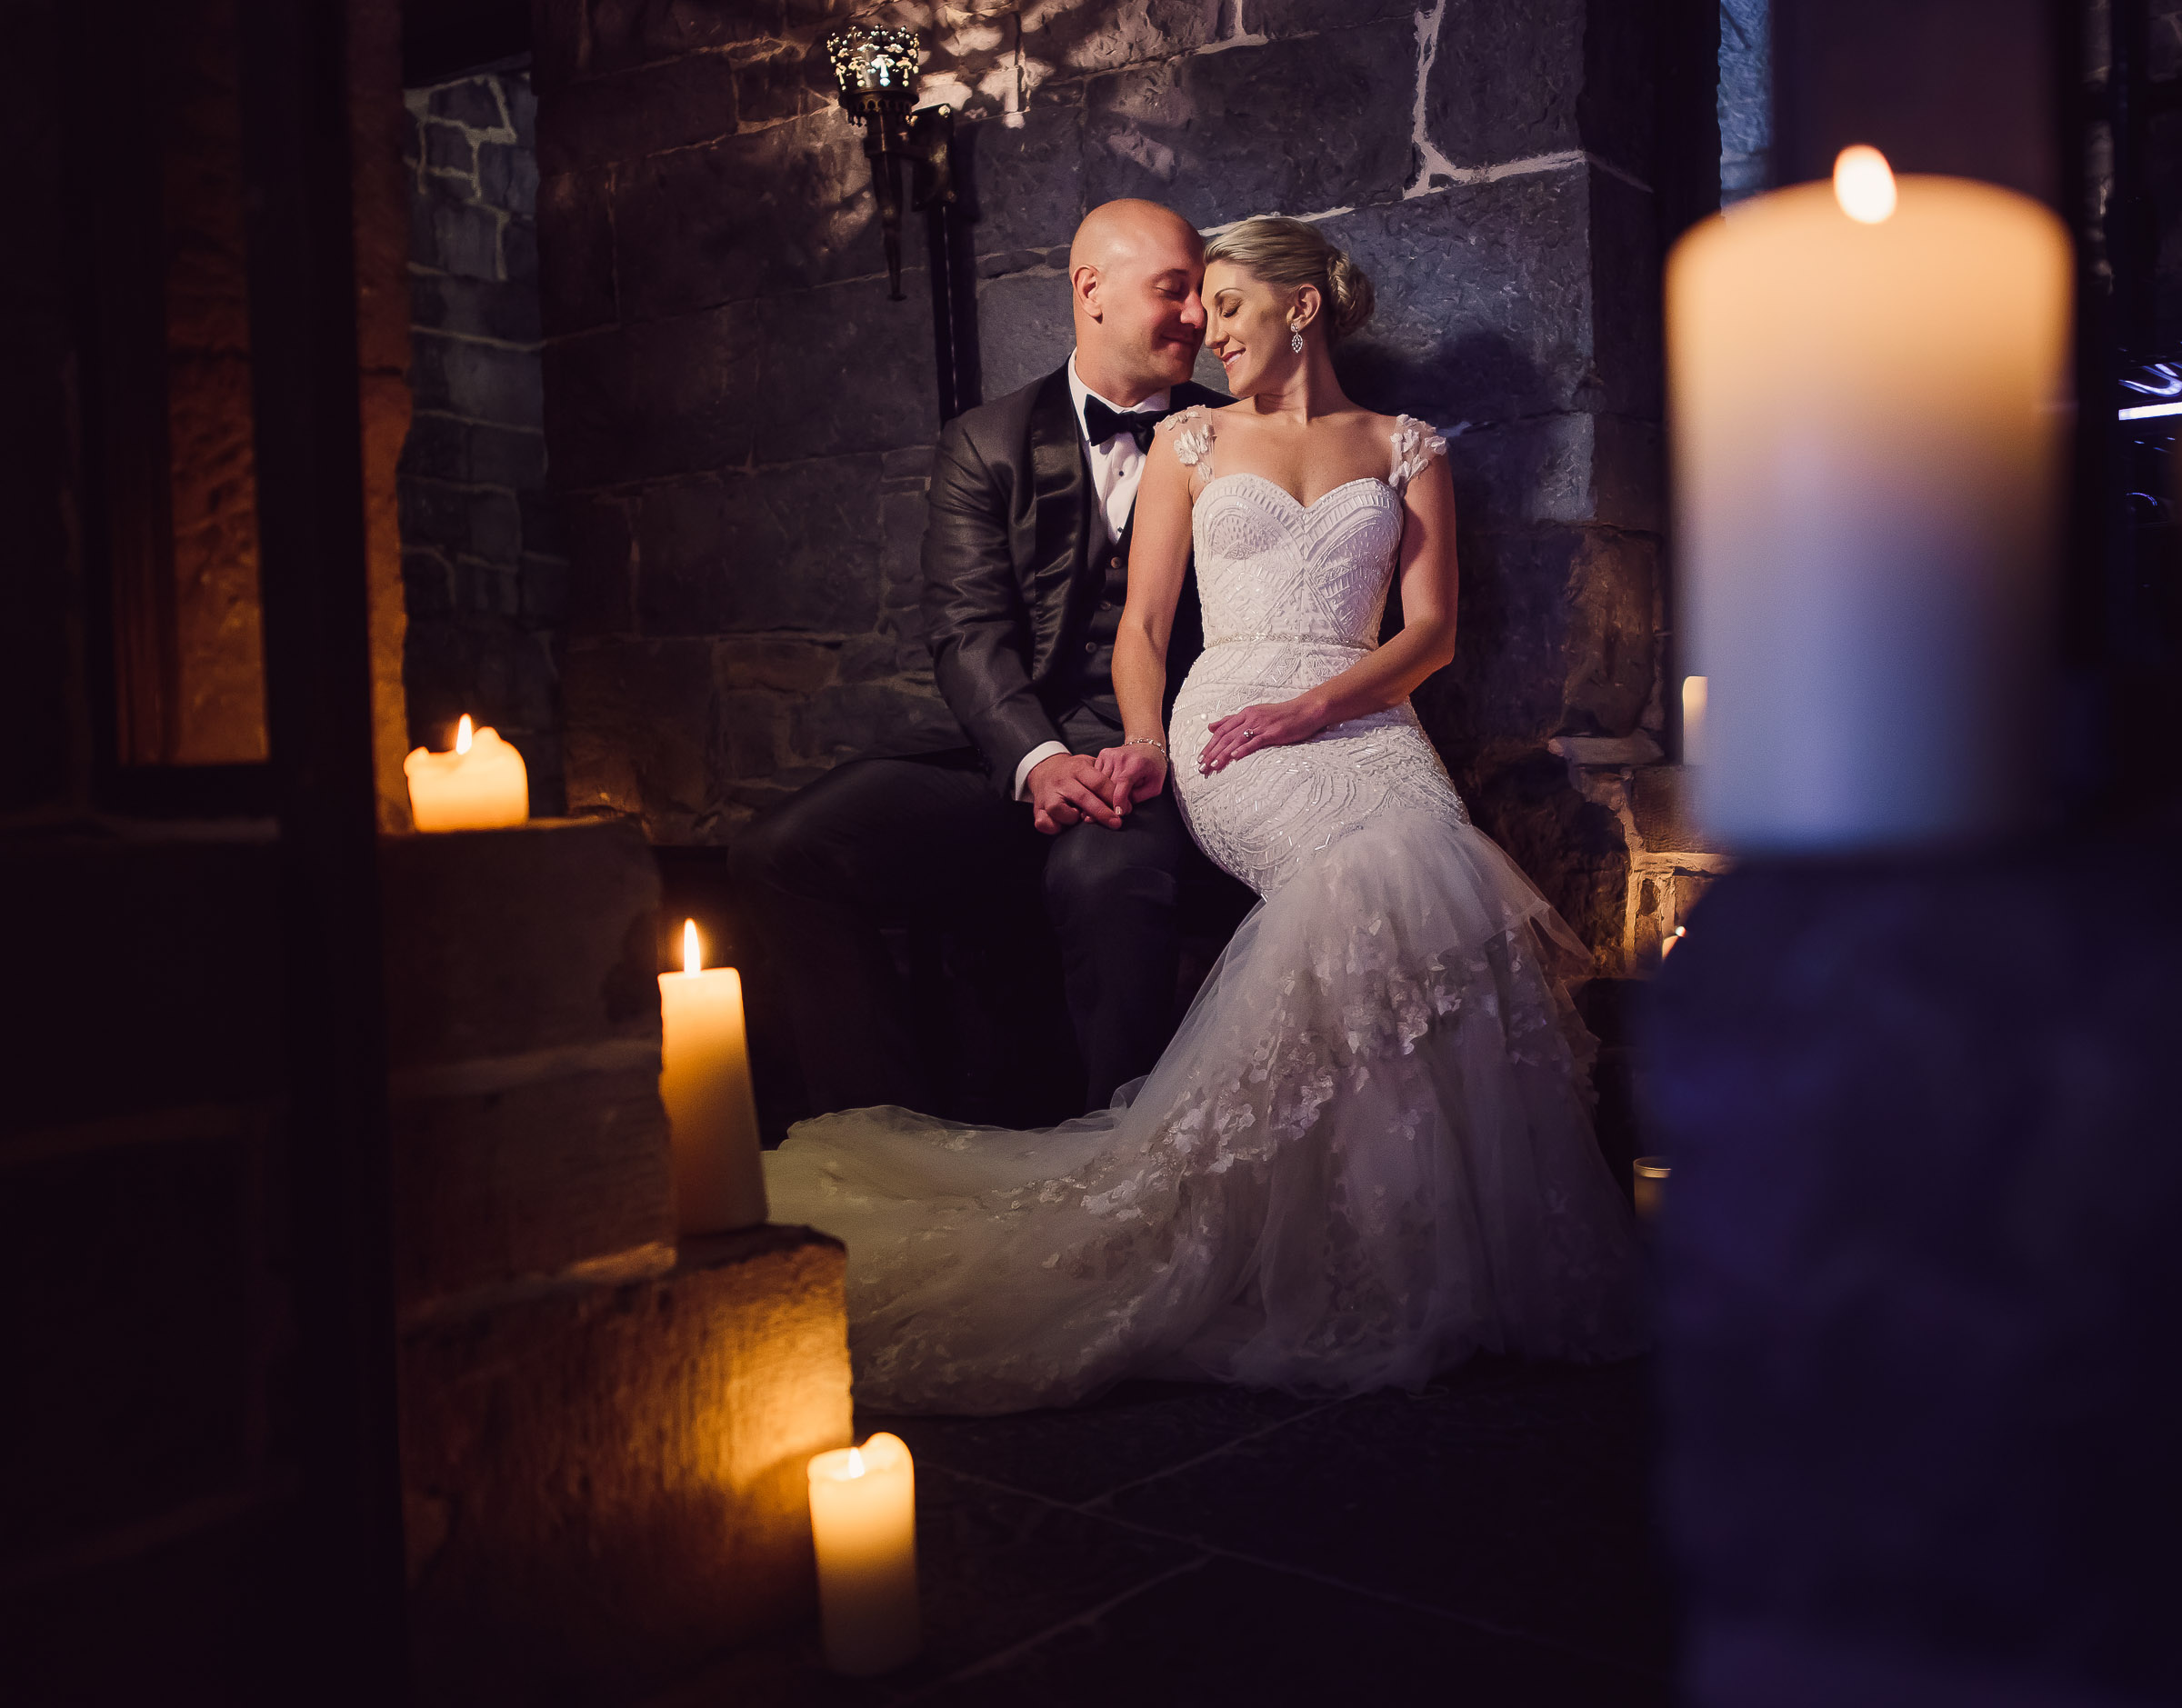 Intimate couple by candlelight - photo by the Brenizers